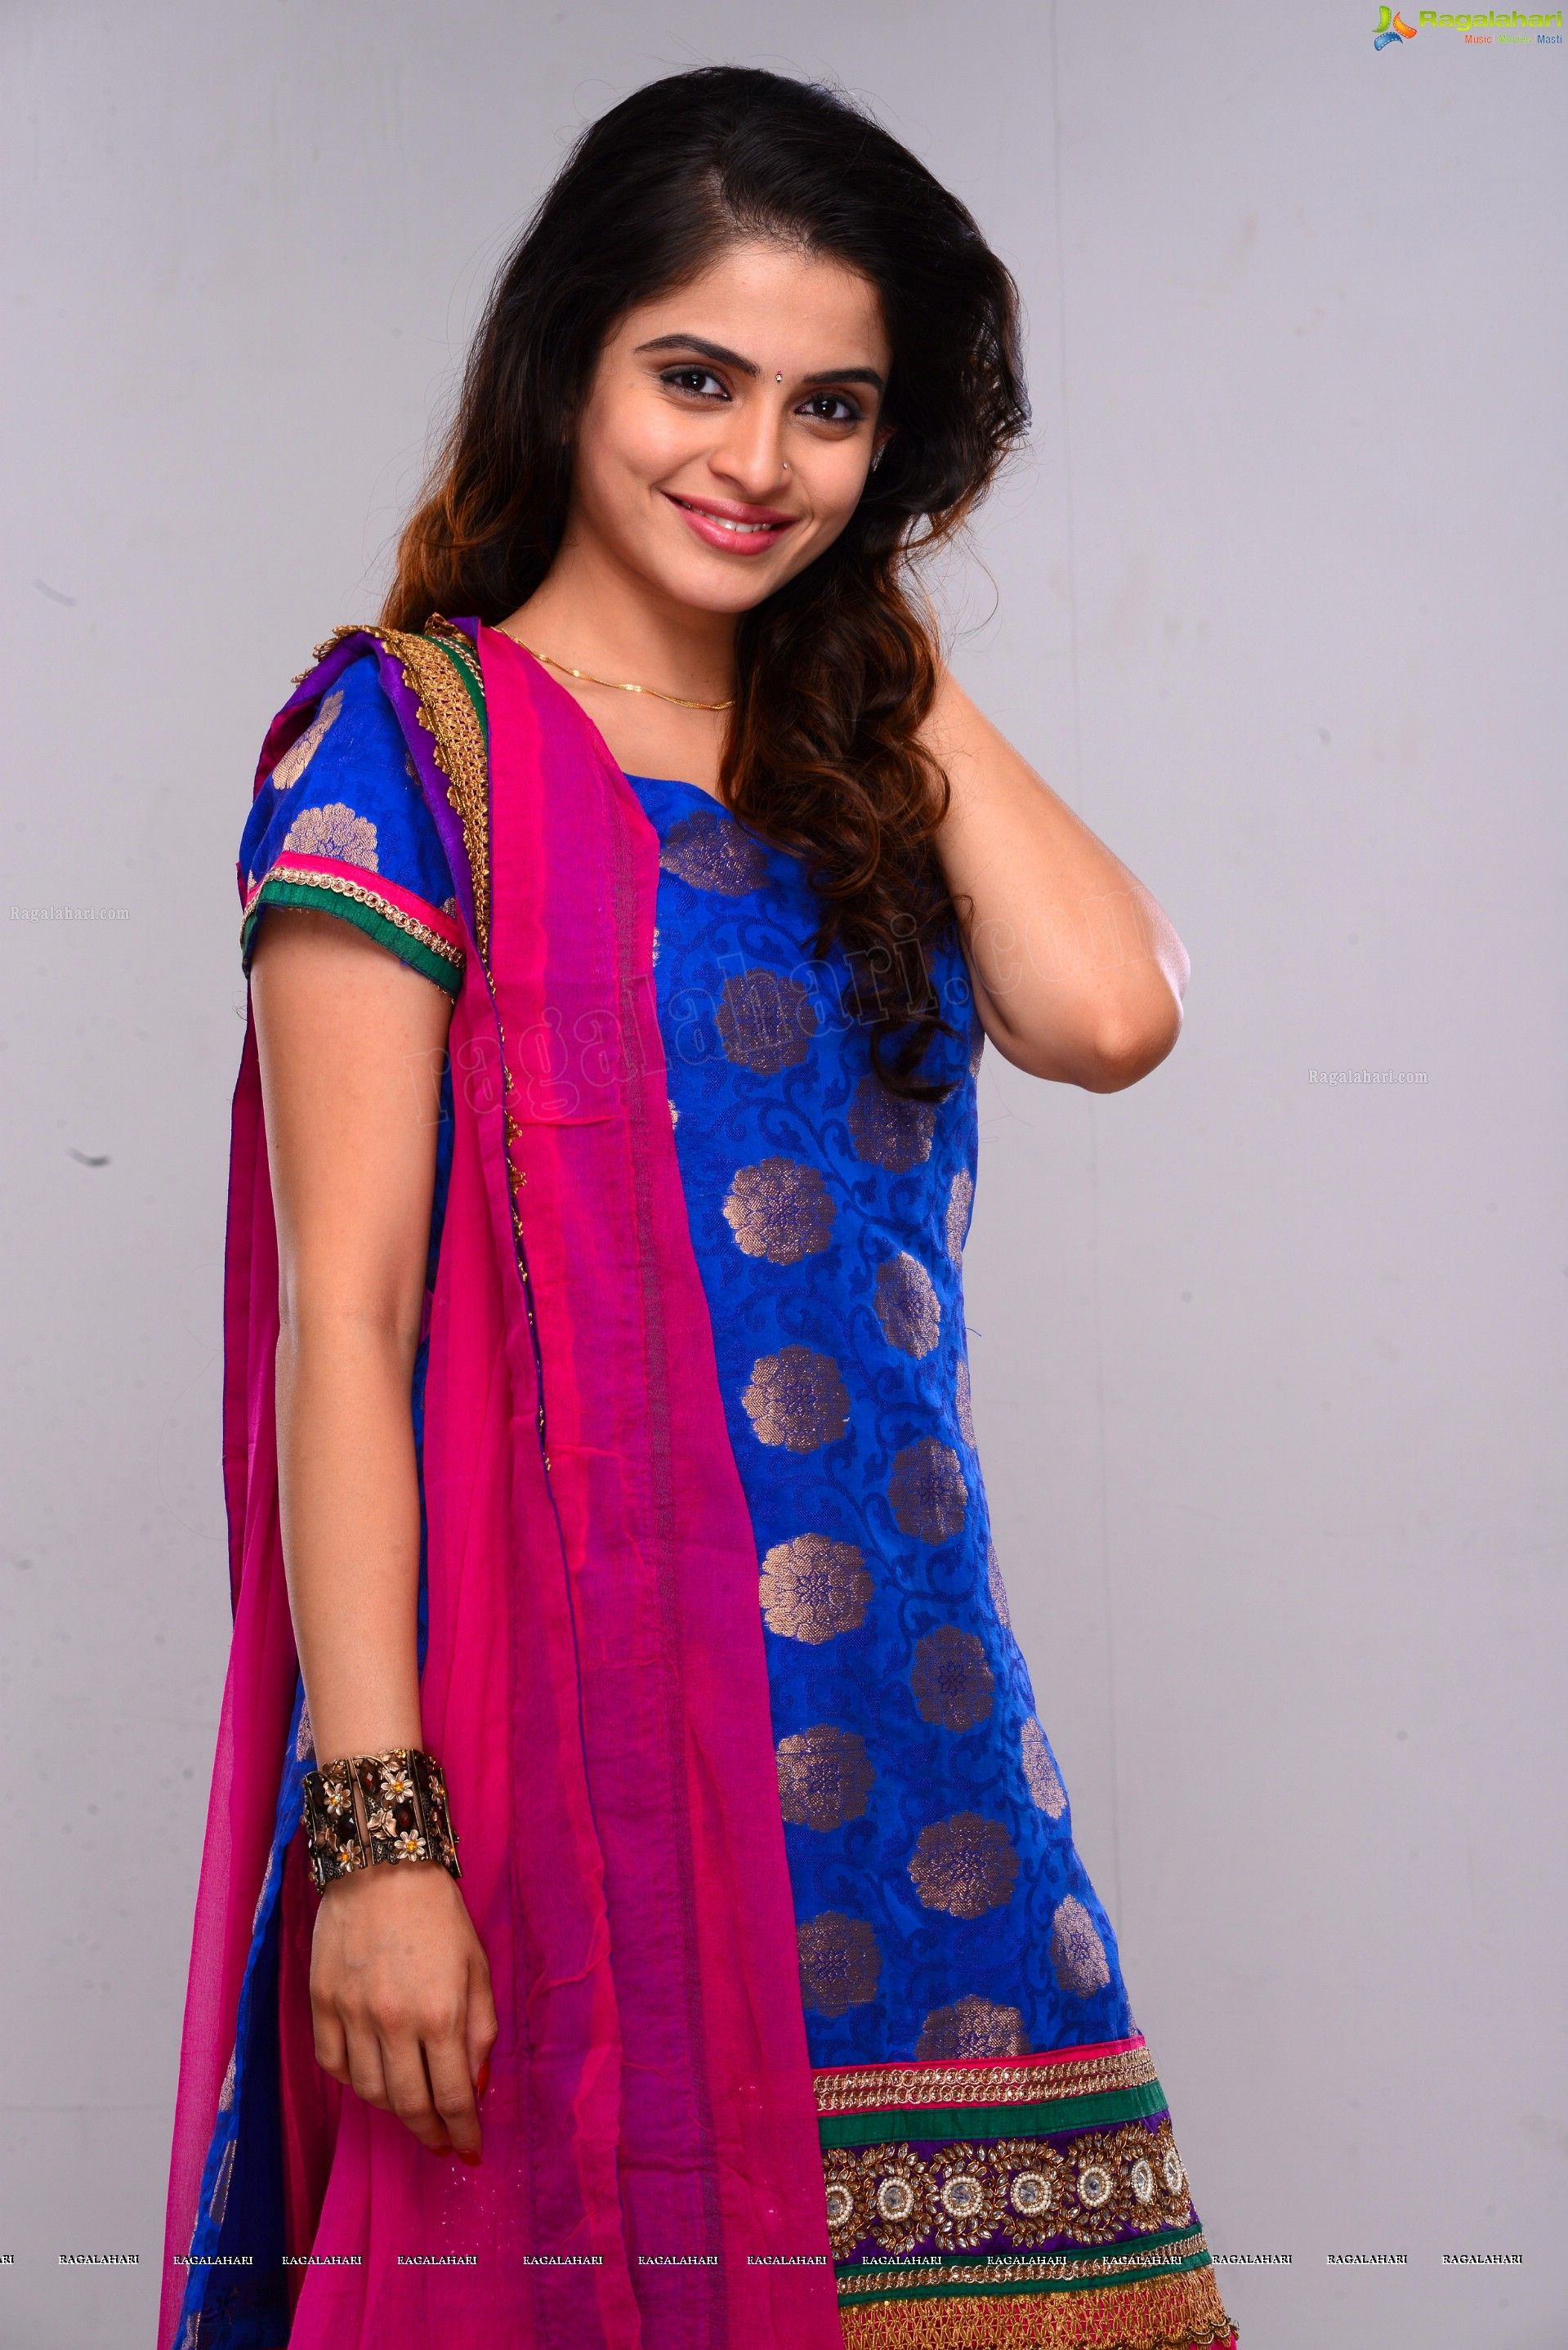 exclusive: teree sang heroine sheena shahabadi hd photos - image 53